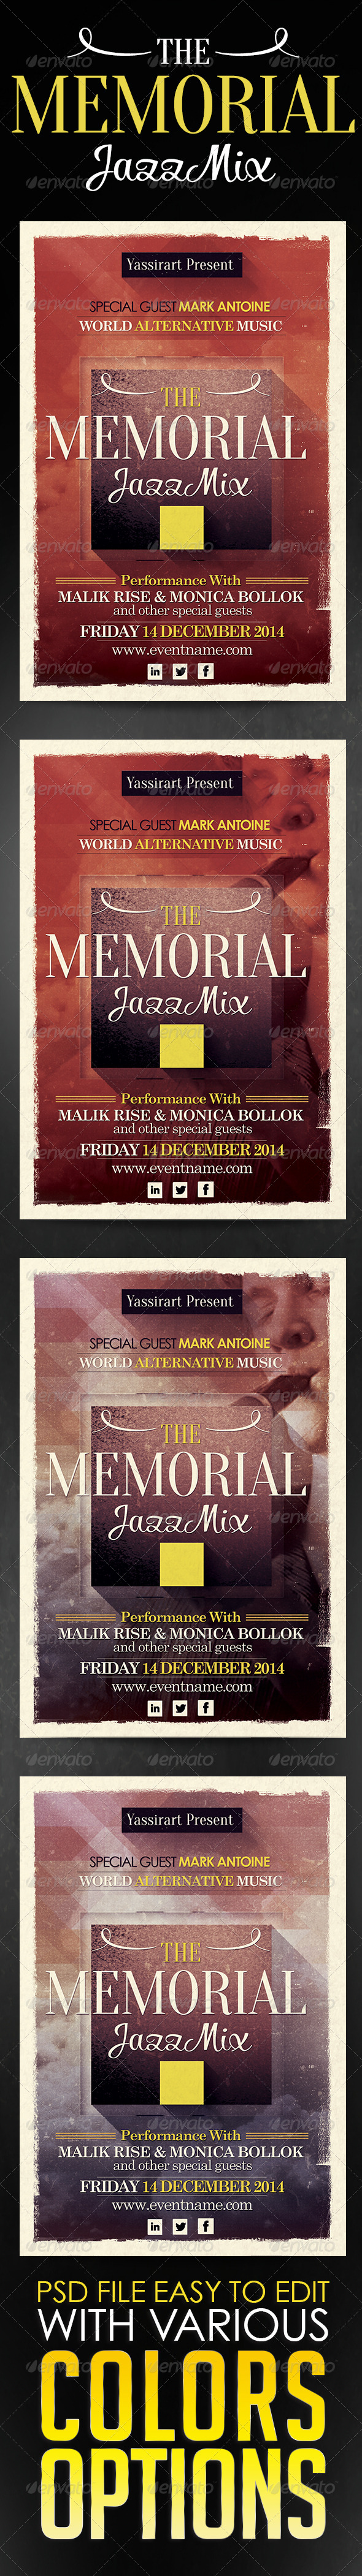 Memorial Jazz Mix Flyer Template